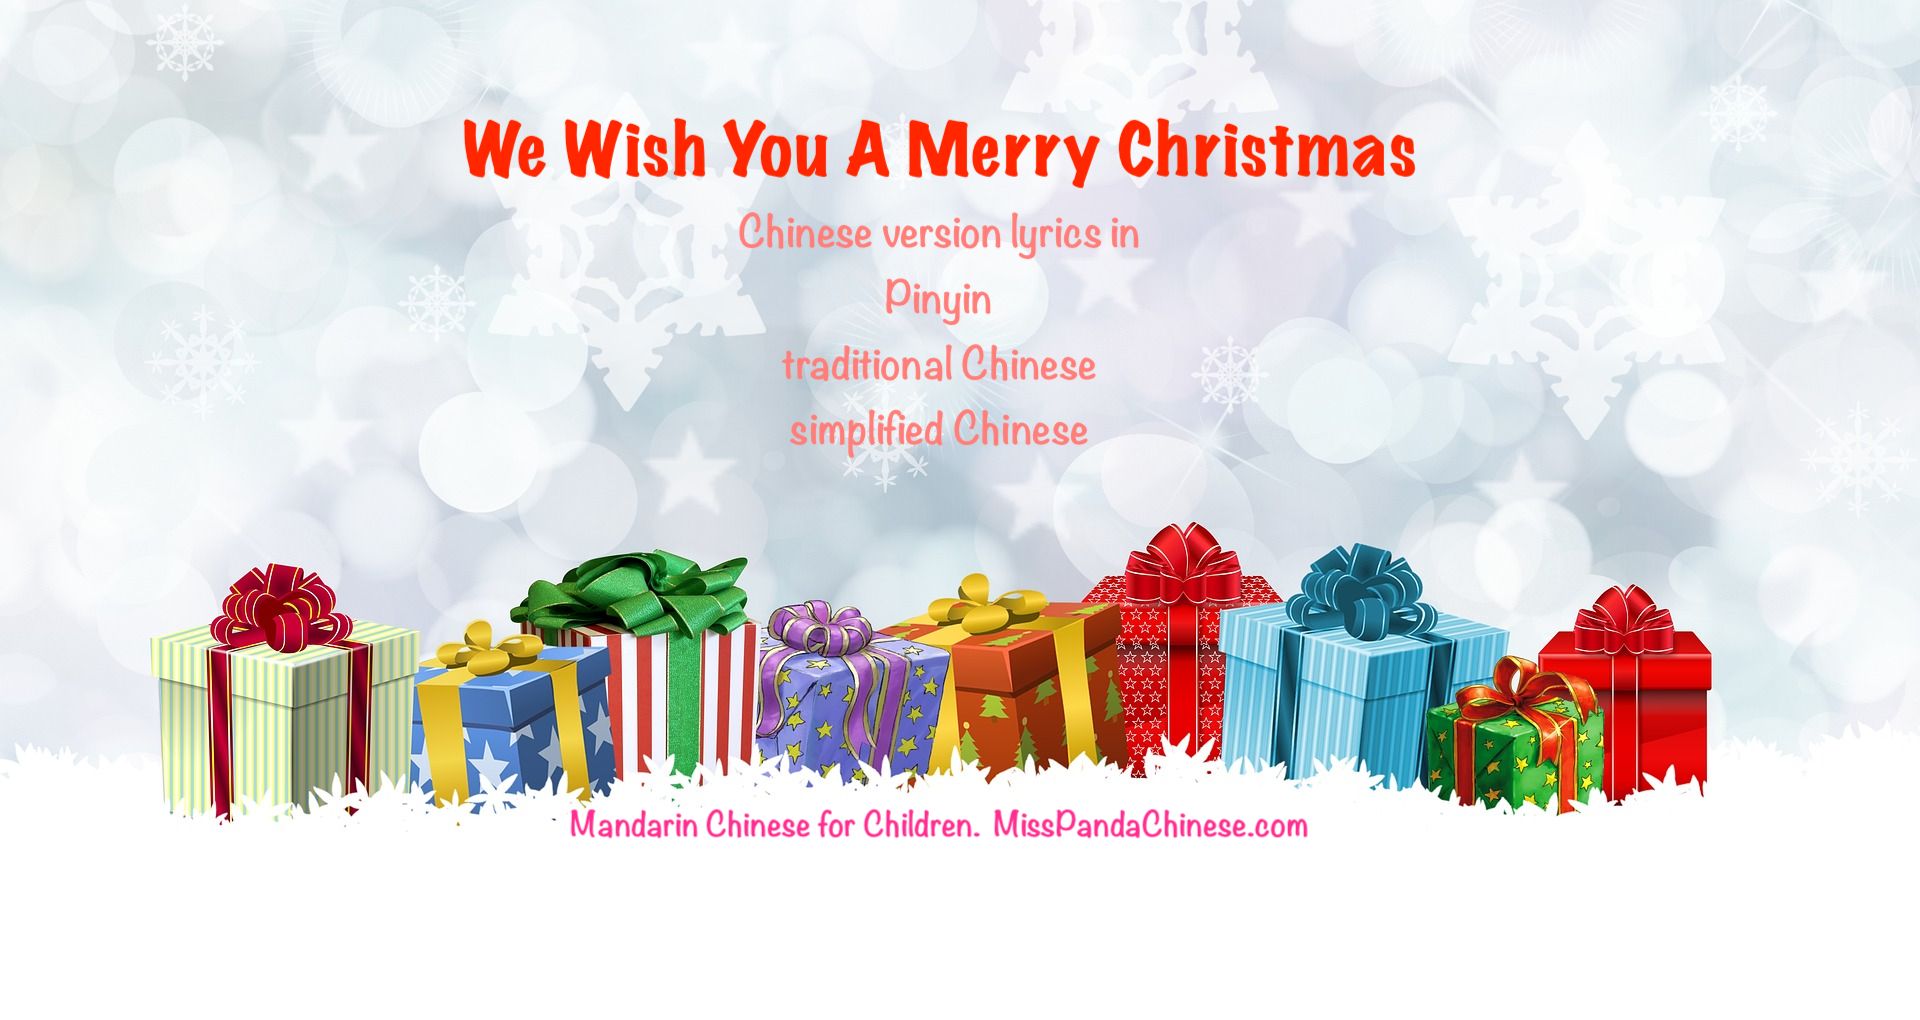 chinese we wish you a merry christmas song lyrics